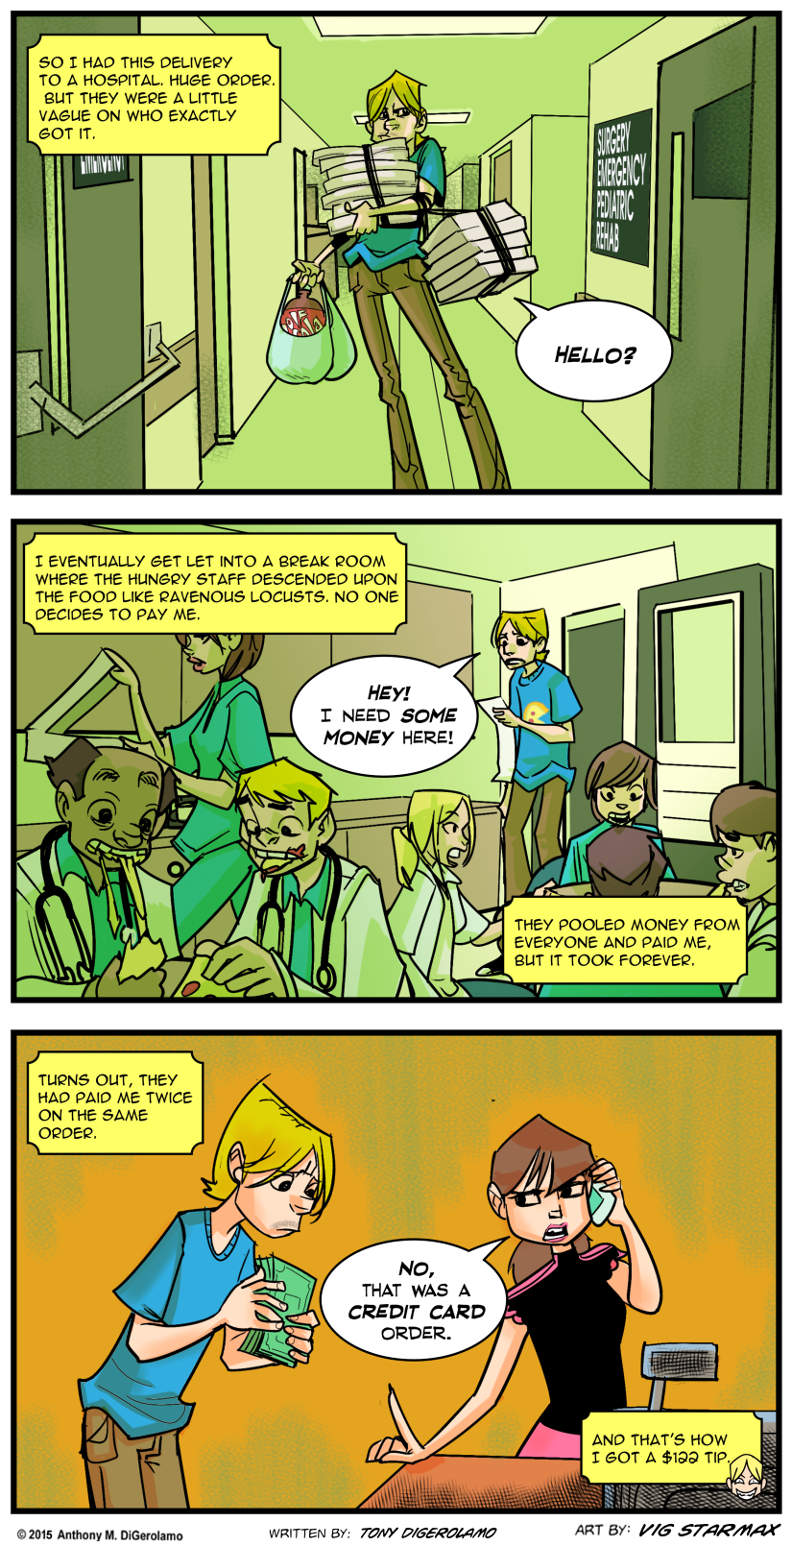 Tales of Pizza:  The Hospital Tip